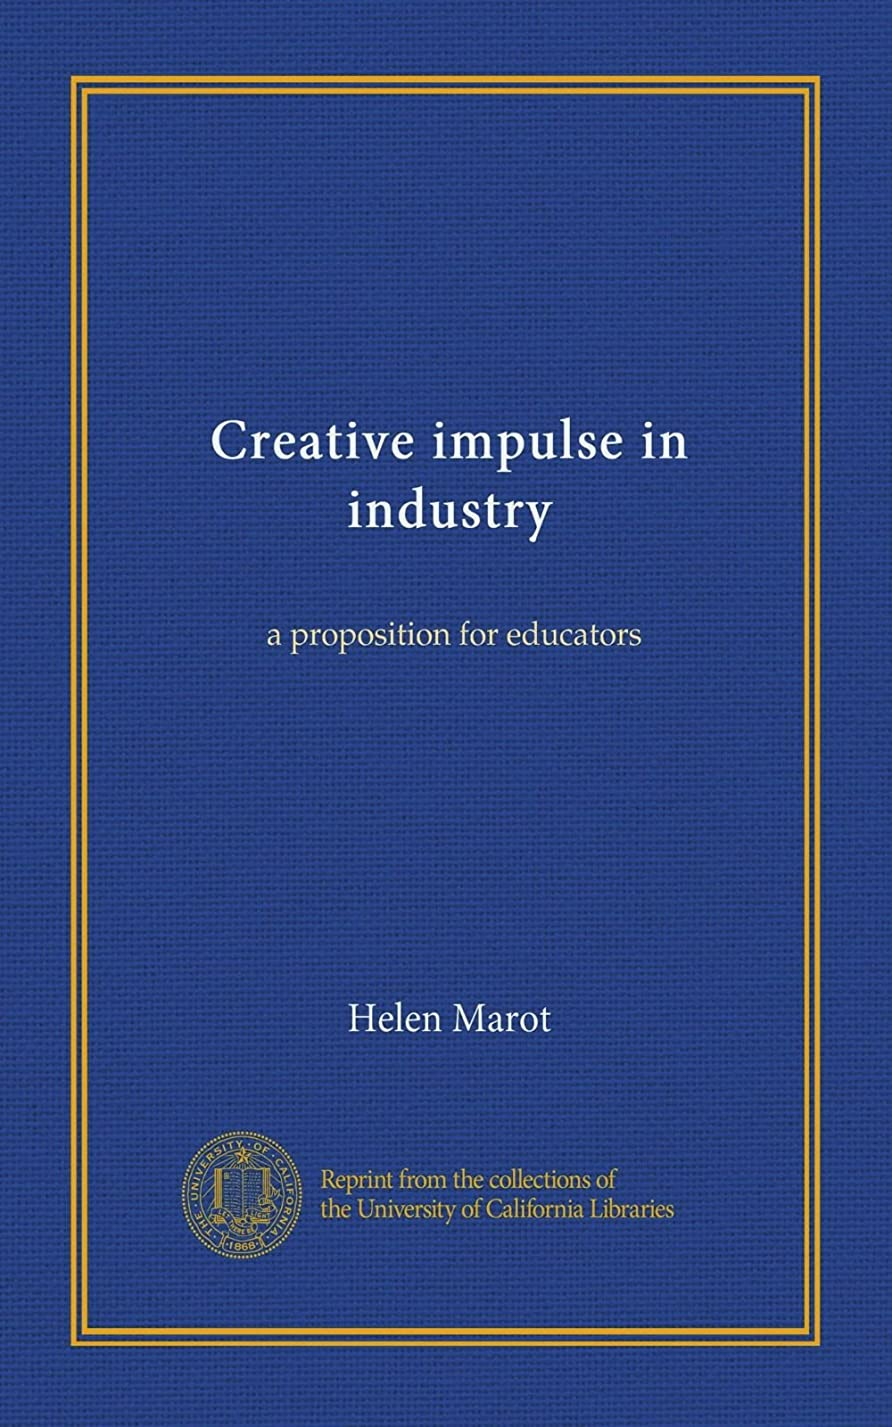 不利益水分率直なCreative impulse in industry (c.3): a proposition for educators